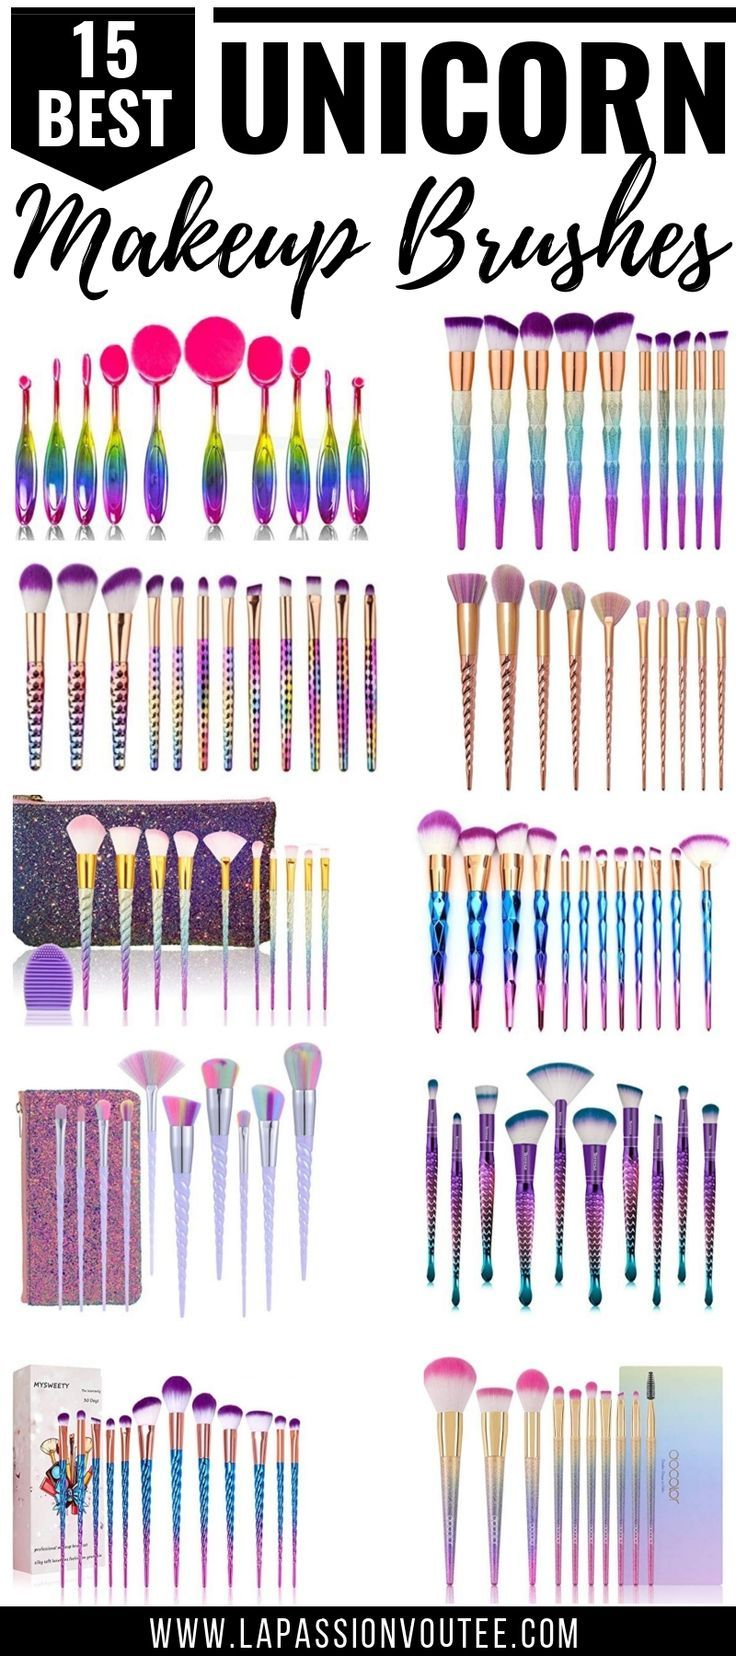 15 Best Unicorn Makeup Brushes You Can Actually Afford